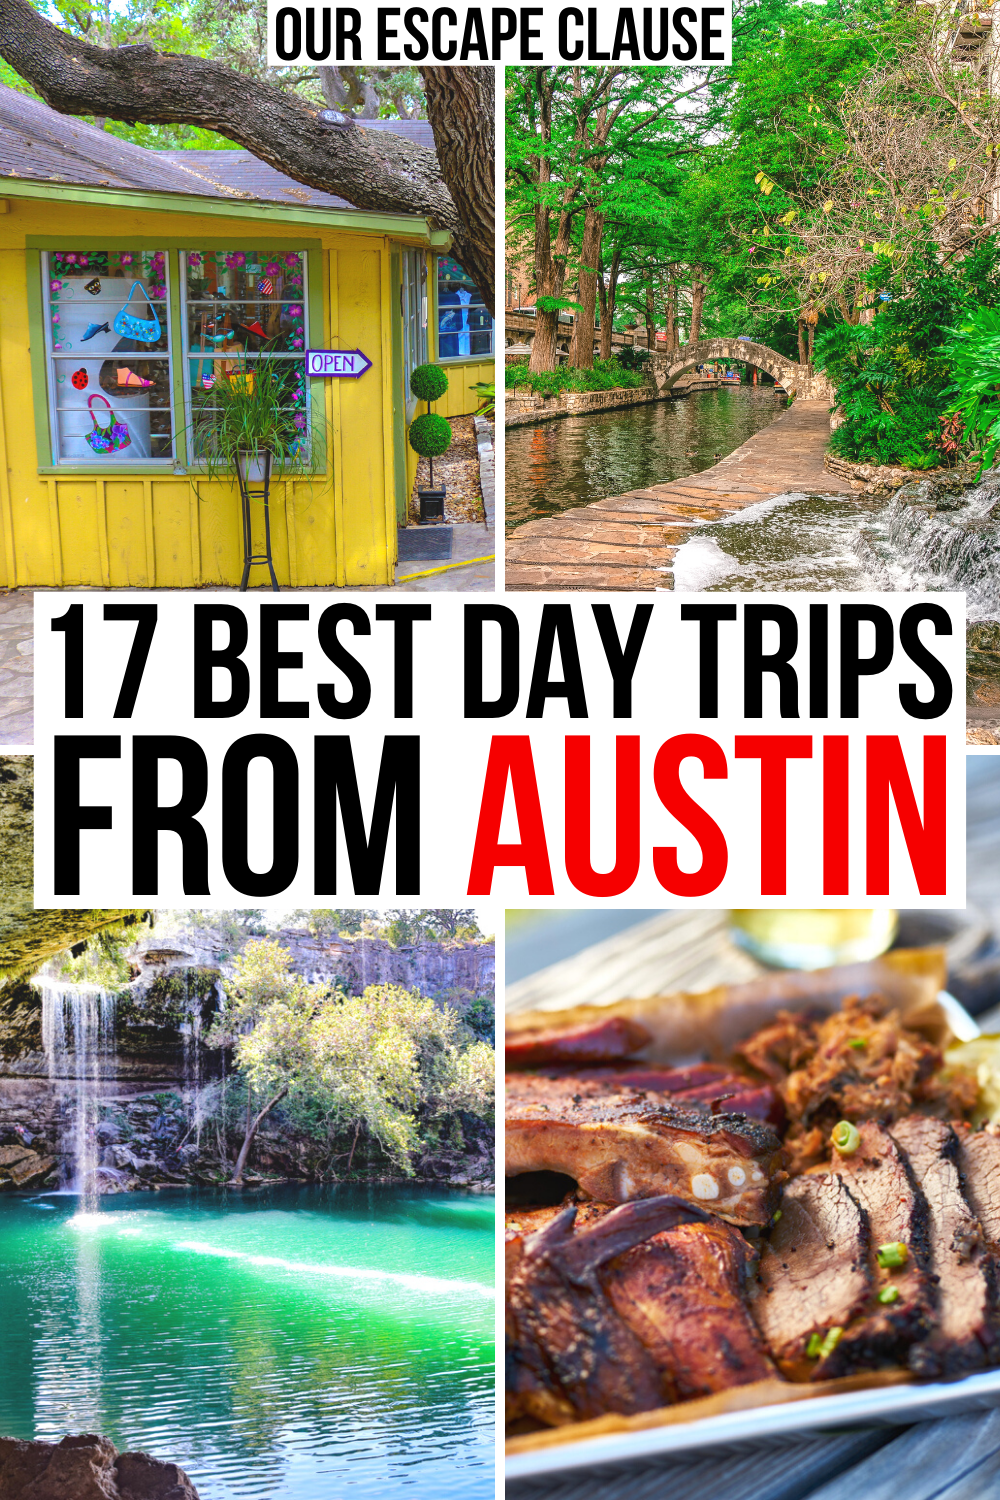 Small towns, wineries, barbecue, and swimming holes: here are the best day trips from Austin!  best day trips from austin texas   best central texas day trips   best day trips in central texas   best things to do in austin tx   austin day trip ideas   austin day trips   austin tx day trips   best day trips in texas   texas day trip ideas   austin travel destinations   best swimming holes near austin   best hikes near austin   best small towns near austin tx     best places to visit near austin